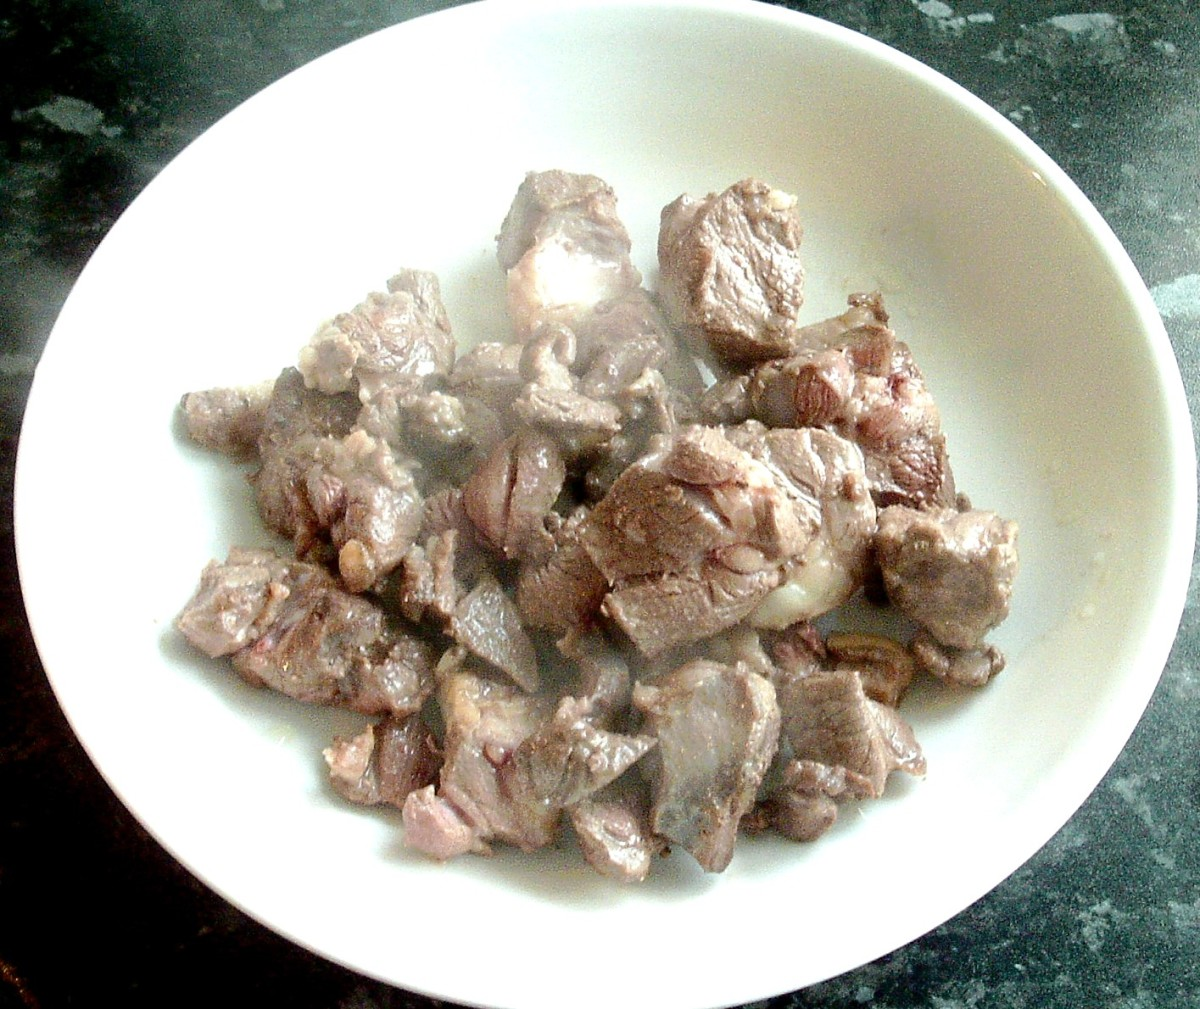 Browned and sealed goat meat